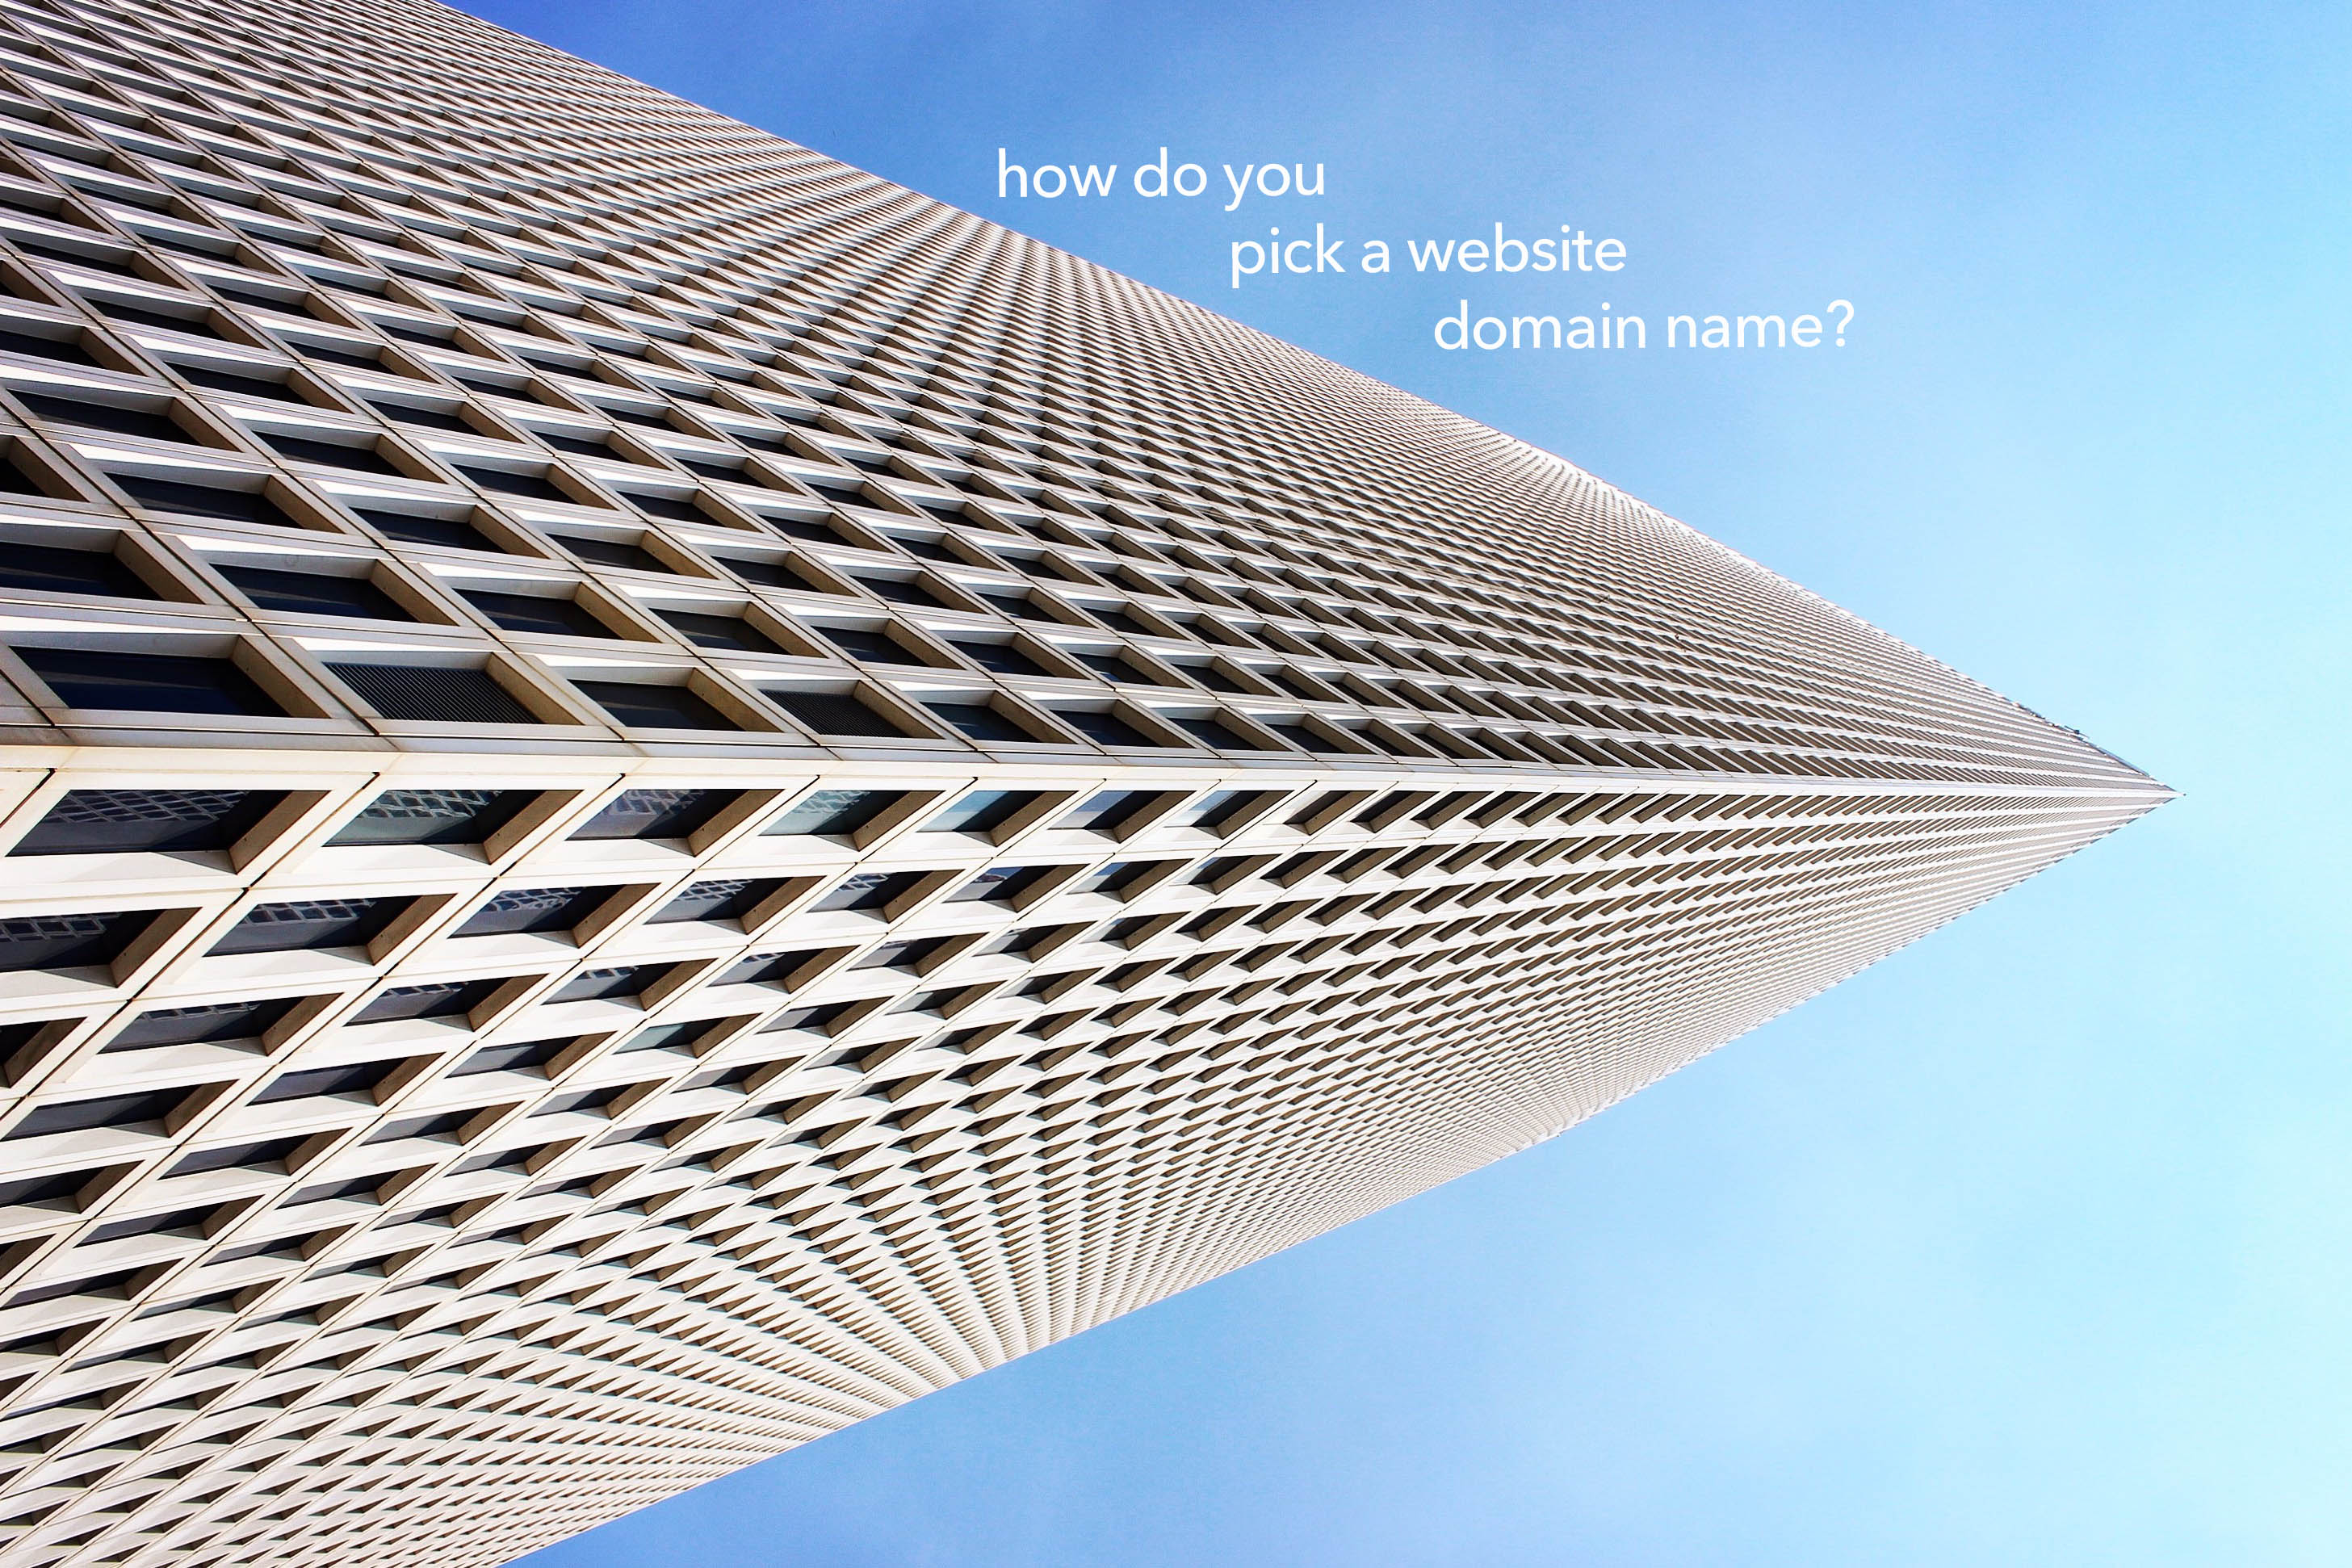 How do you pick a website domain name